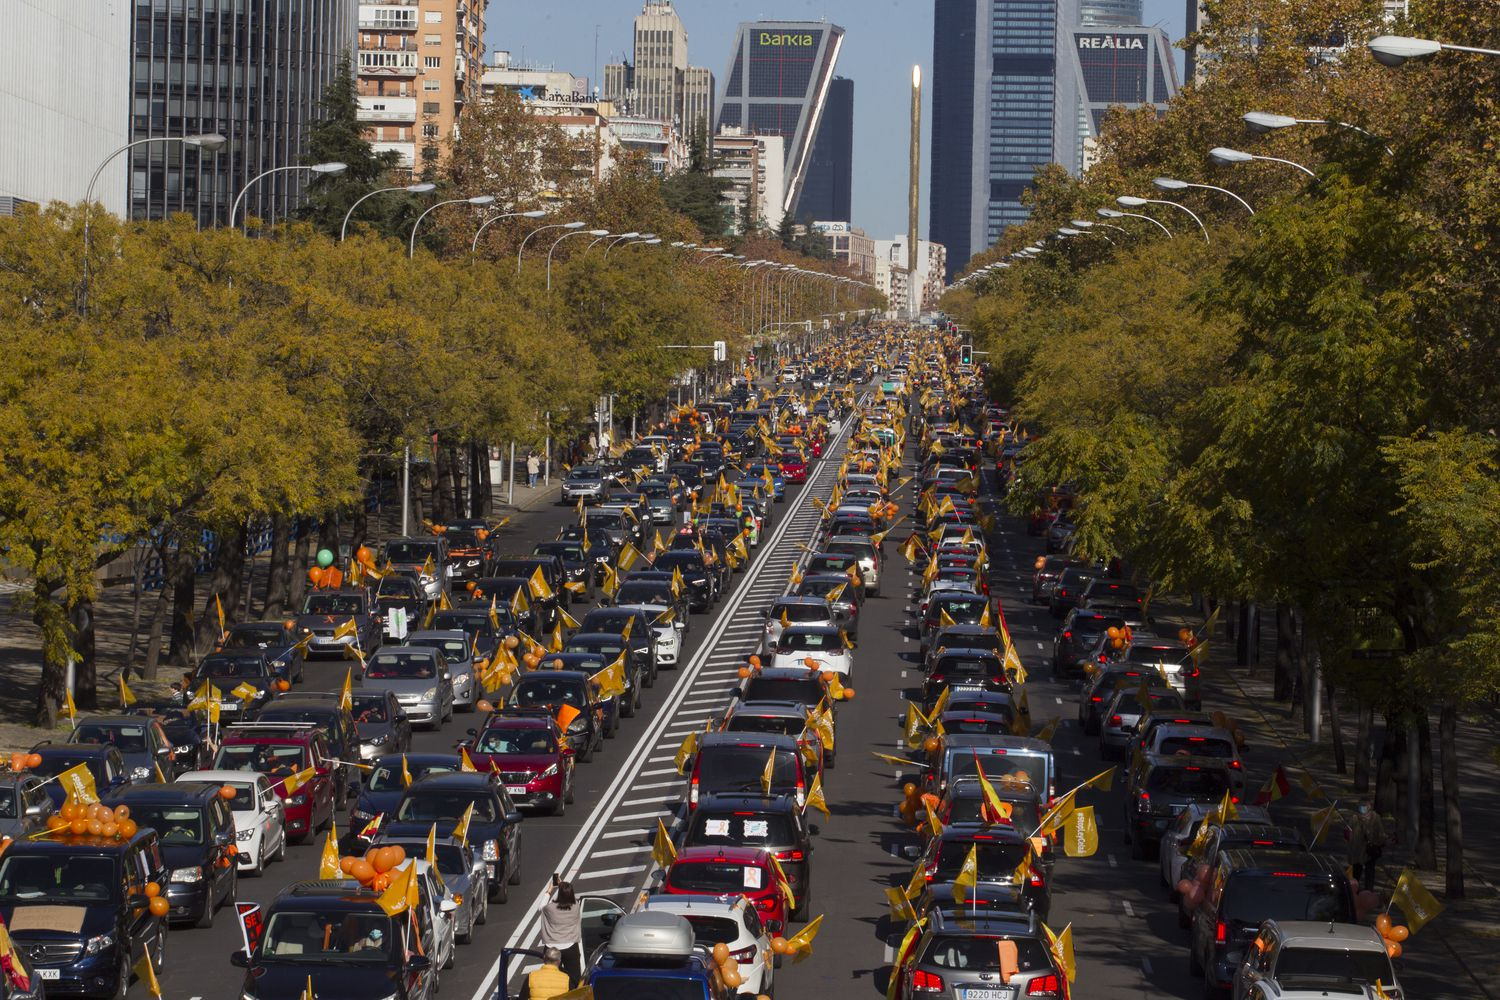 Thousands drive through Spanish streets to protest new education reform